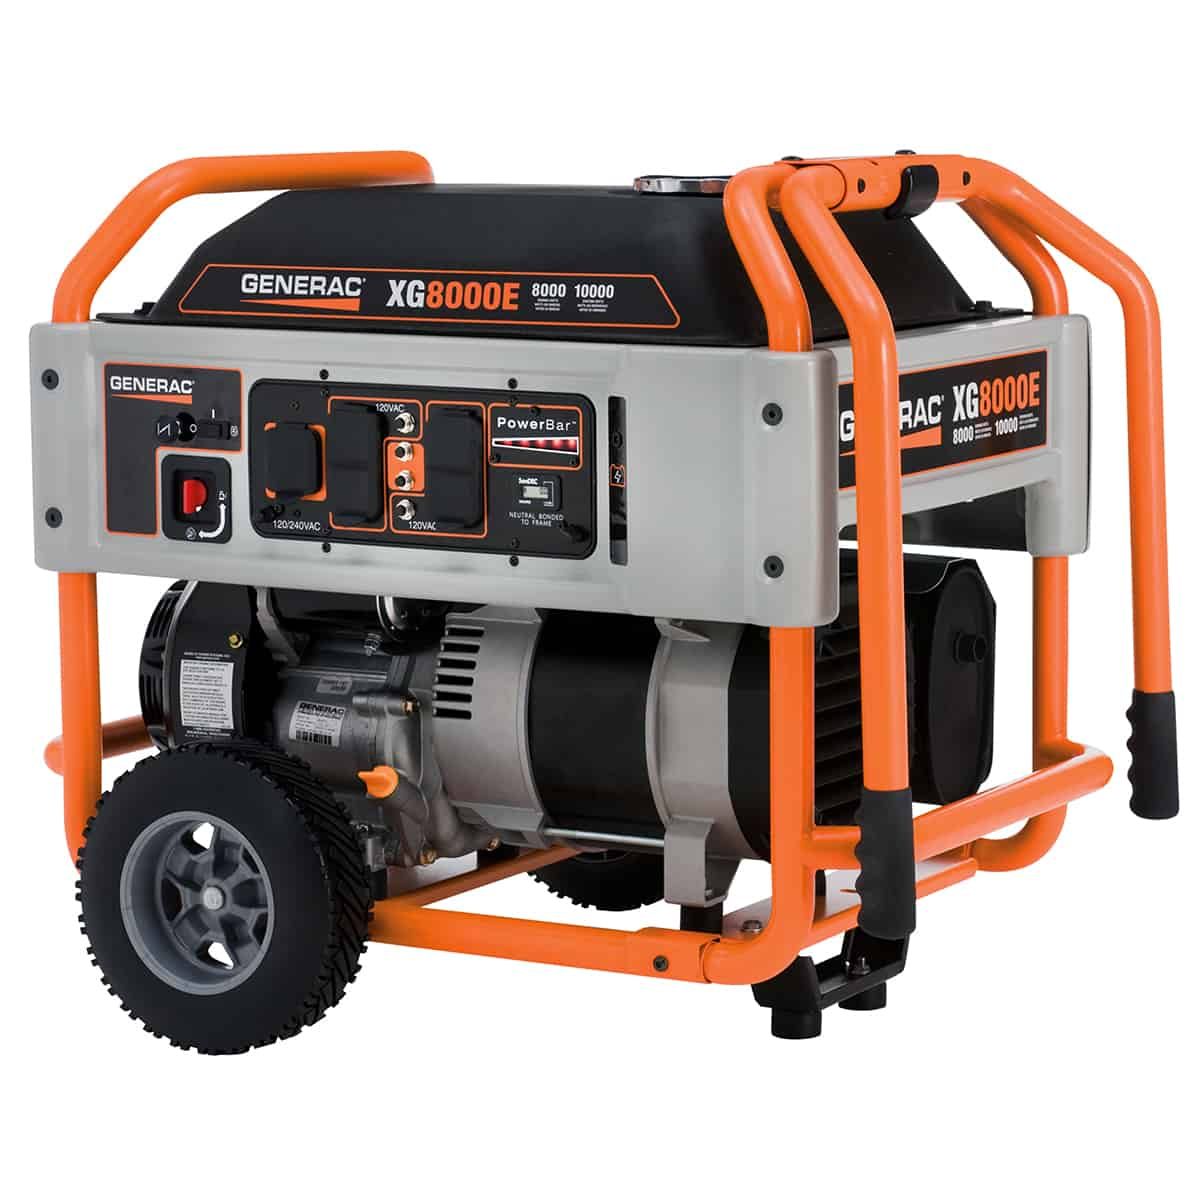 Generac Portable XG Series XG8000E Electric Start